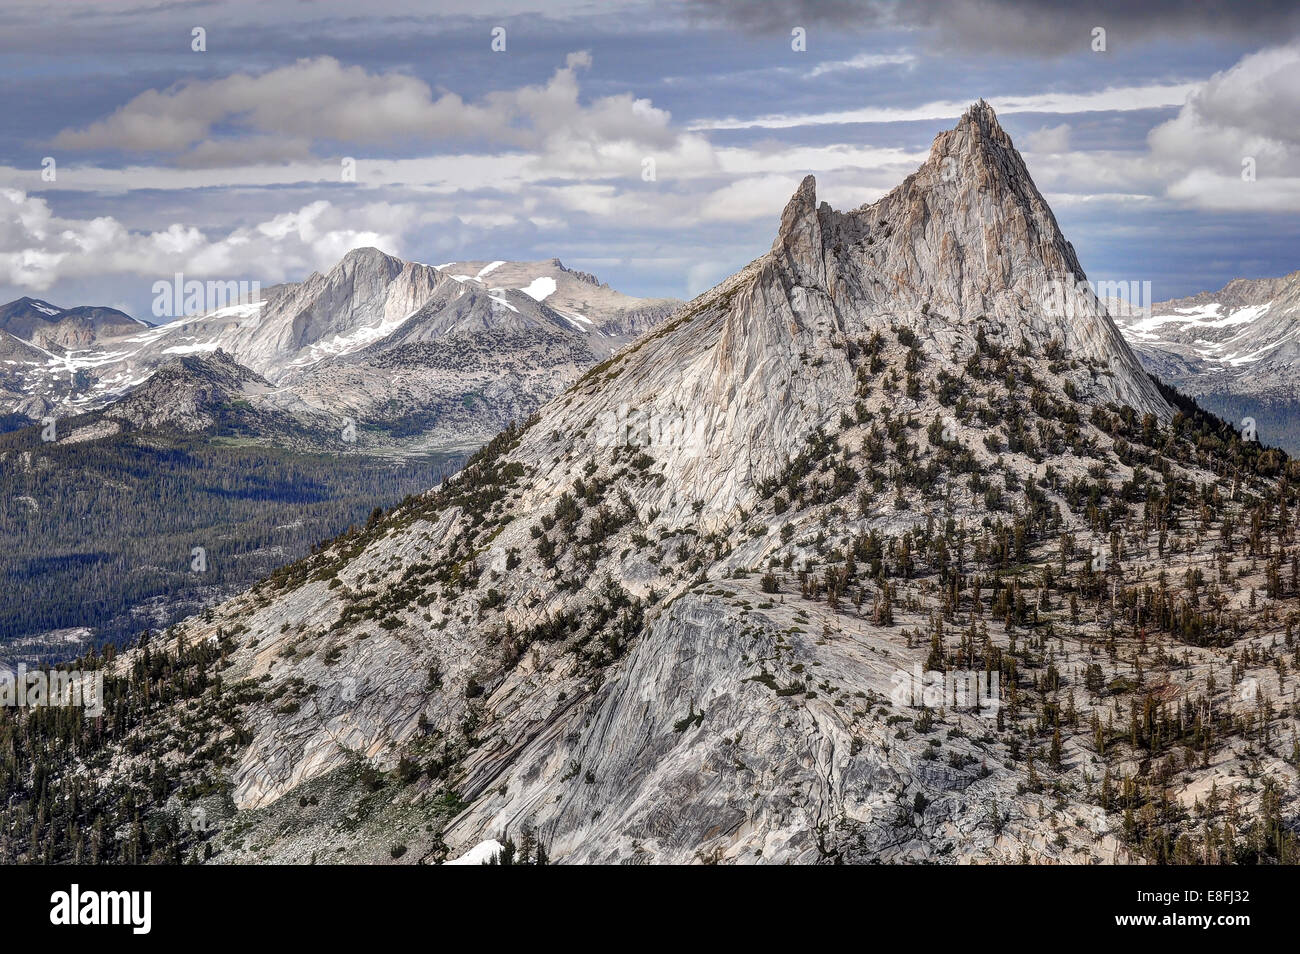 USA, California, Yosemite National Park, Cathedral Peak and Mount Conness - Stock Image